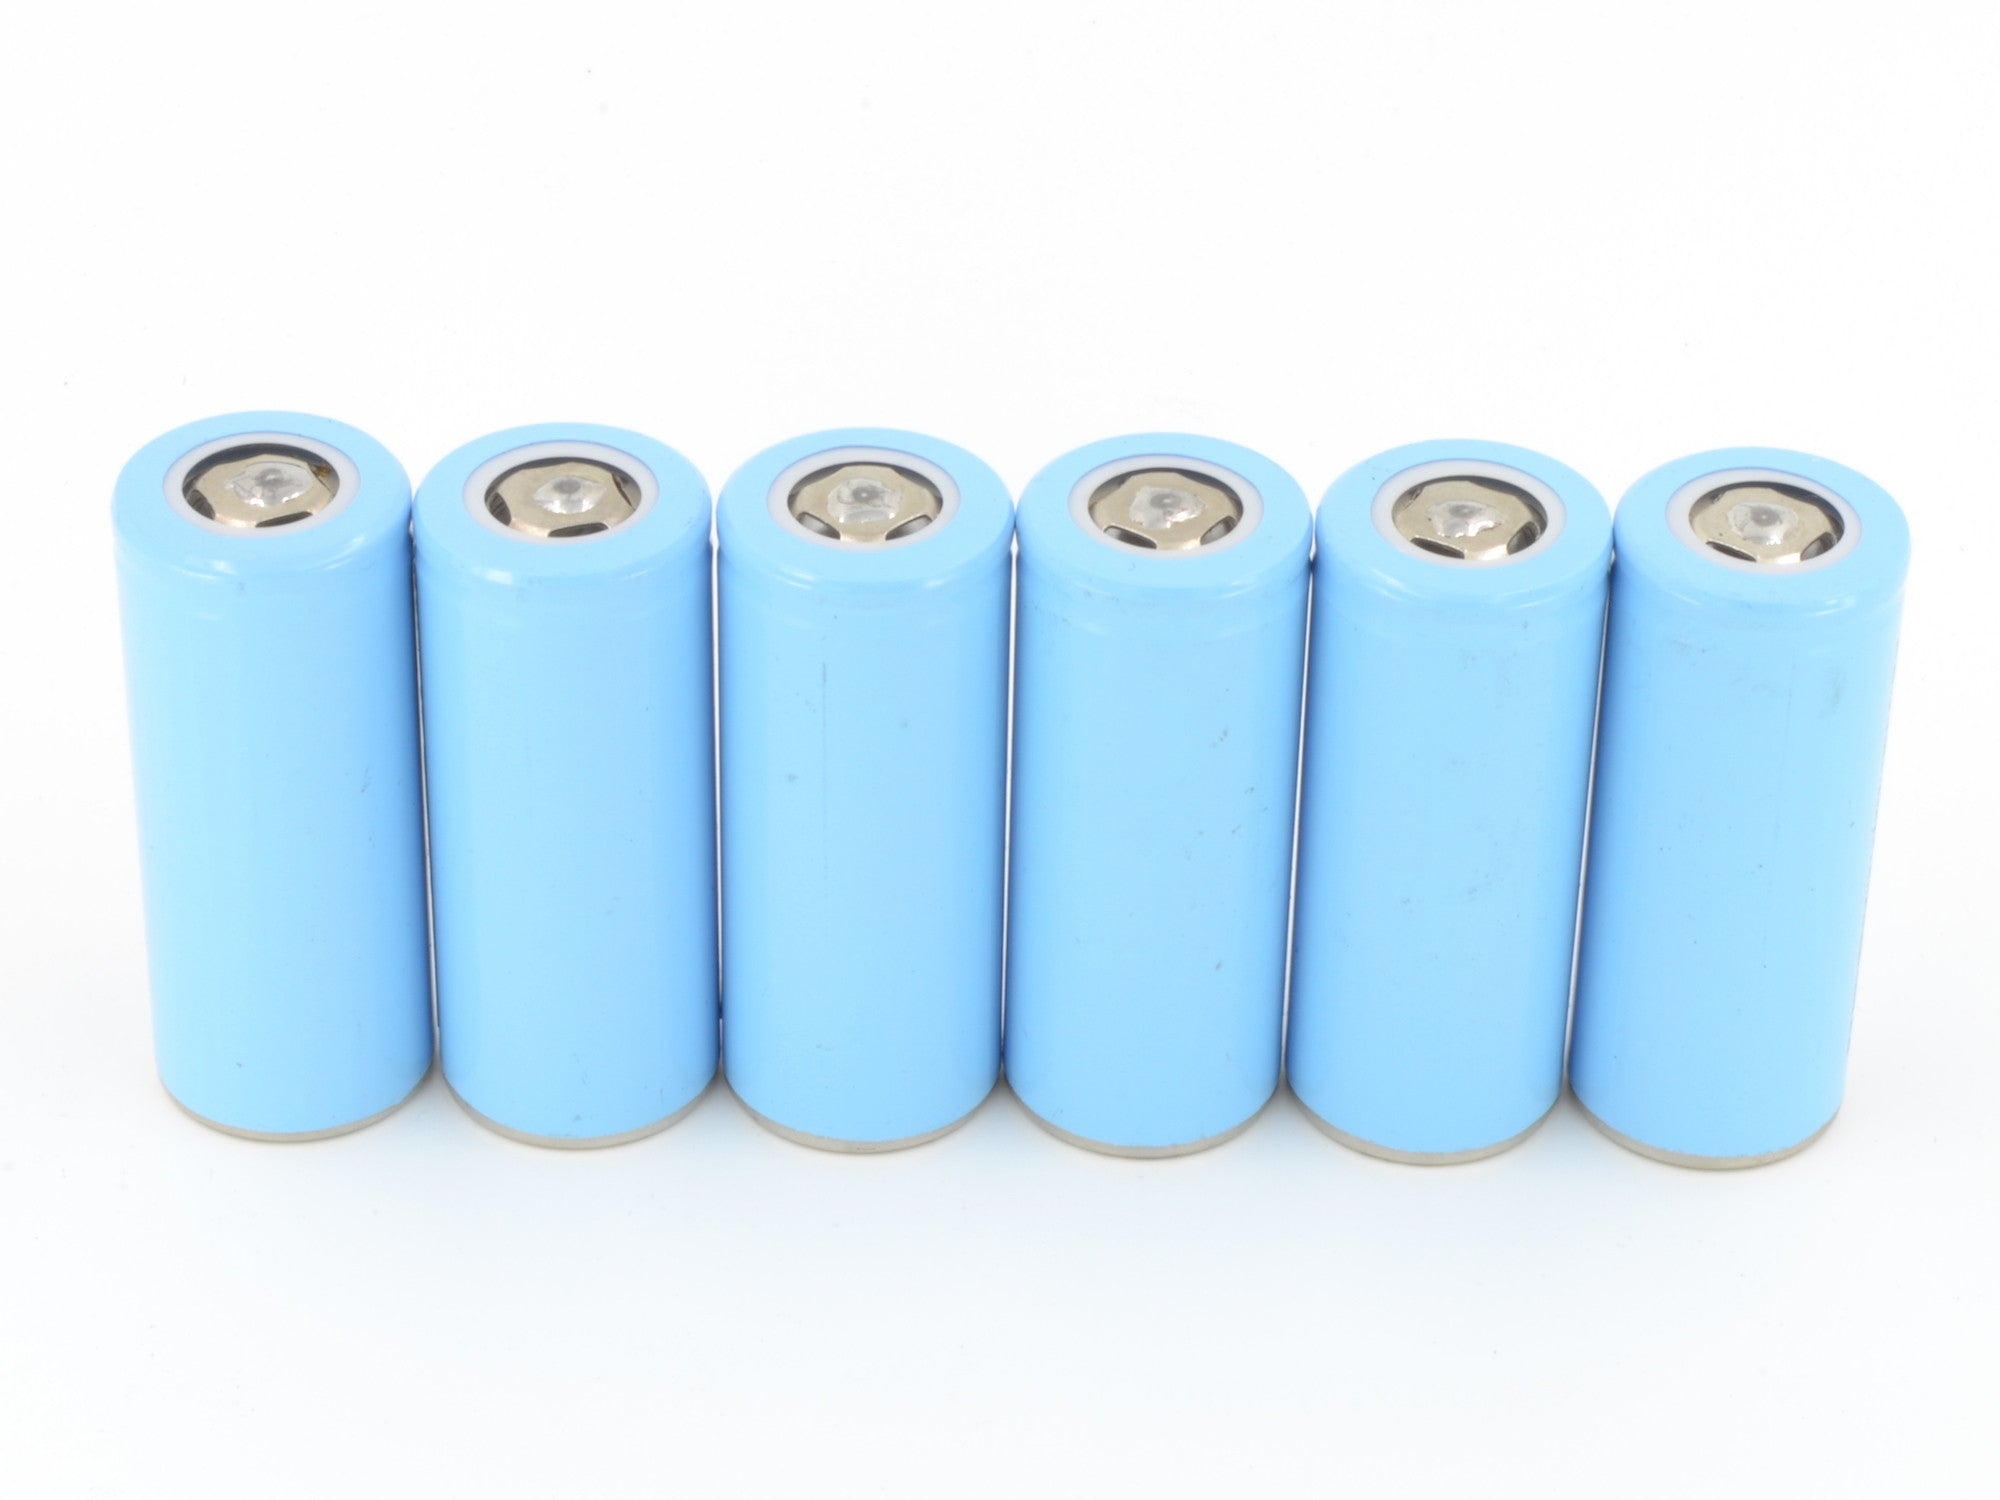 6 rechargeable high capacity Li-NiMnCo Batteries to power OpenROV